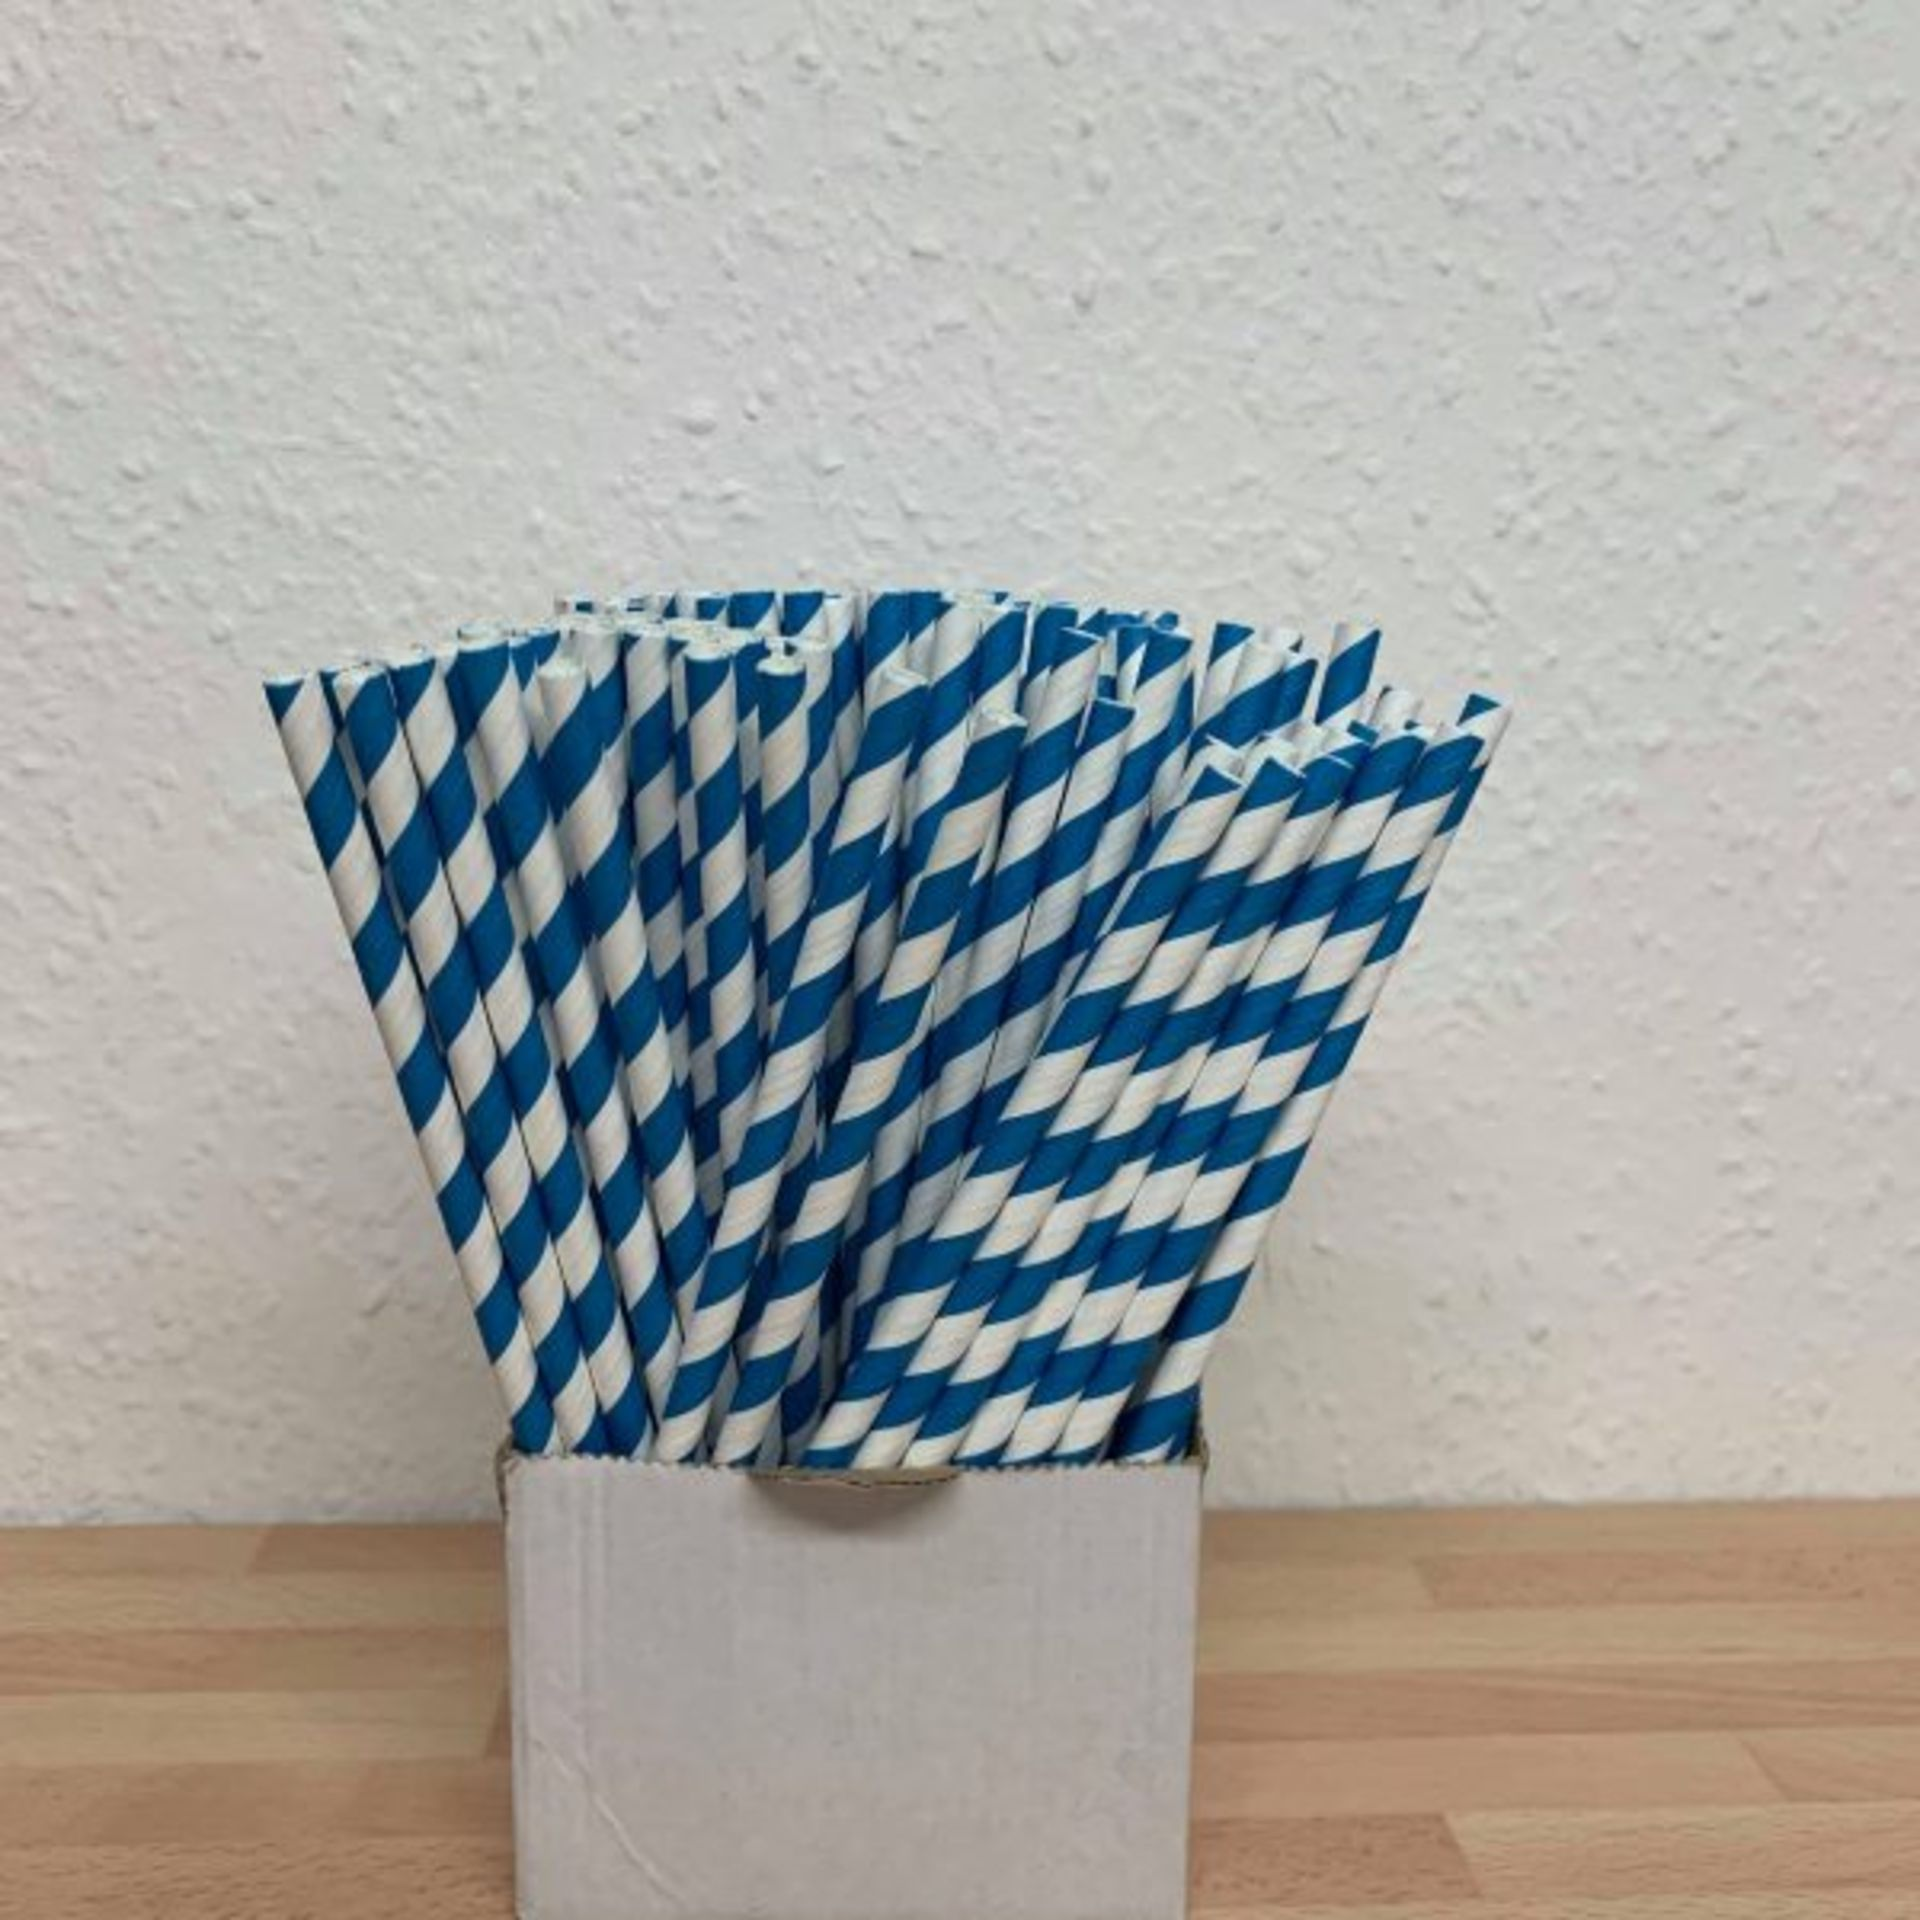 Lot 370 - 5 x Boxes of Candy Twist Paper Straws by 888 Gastro Disposables